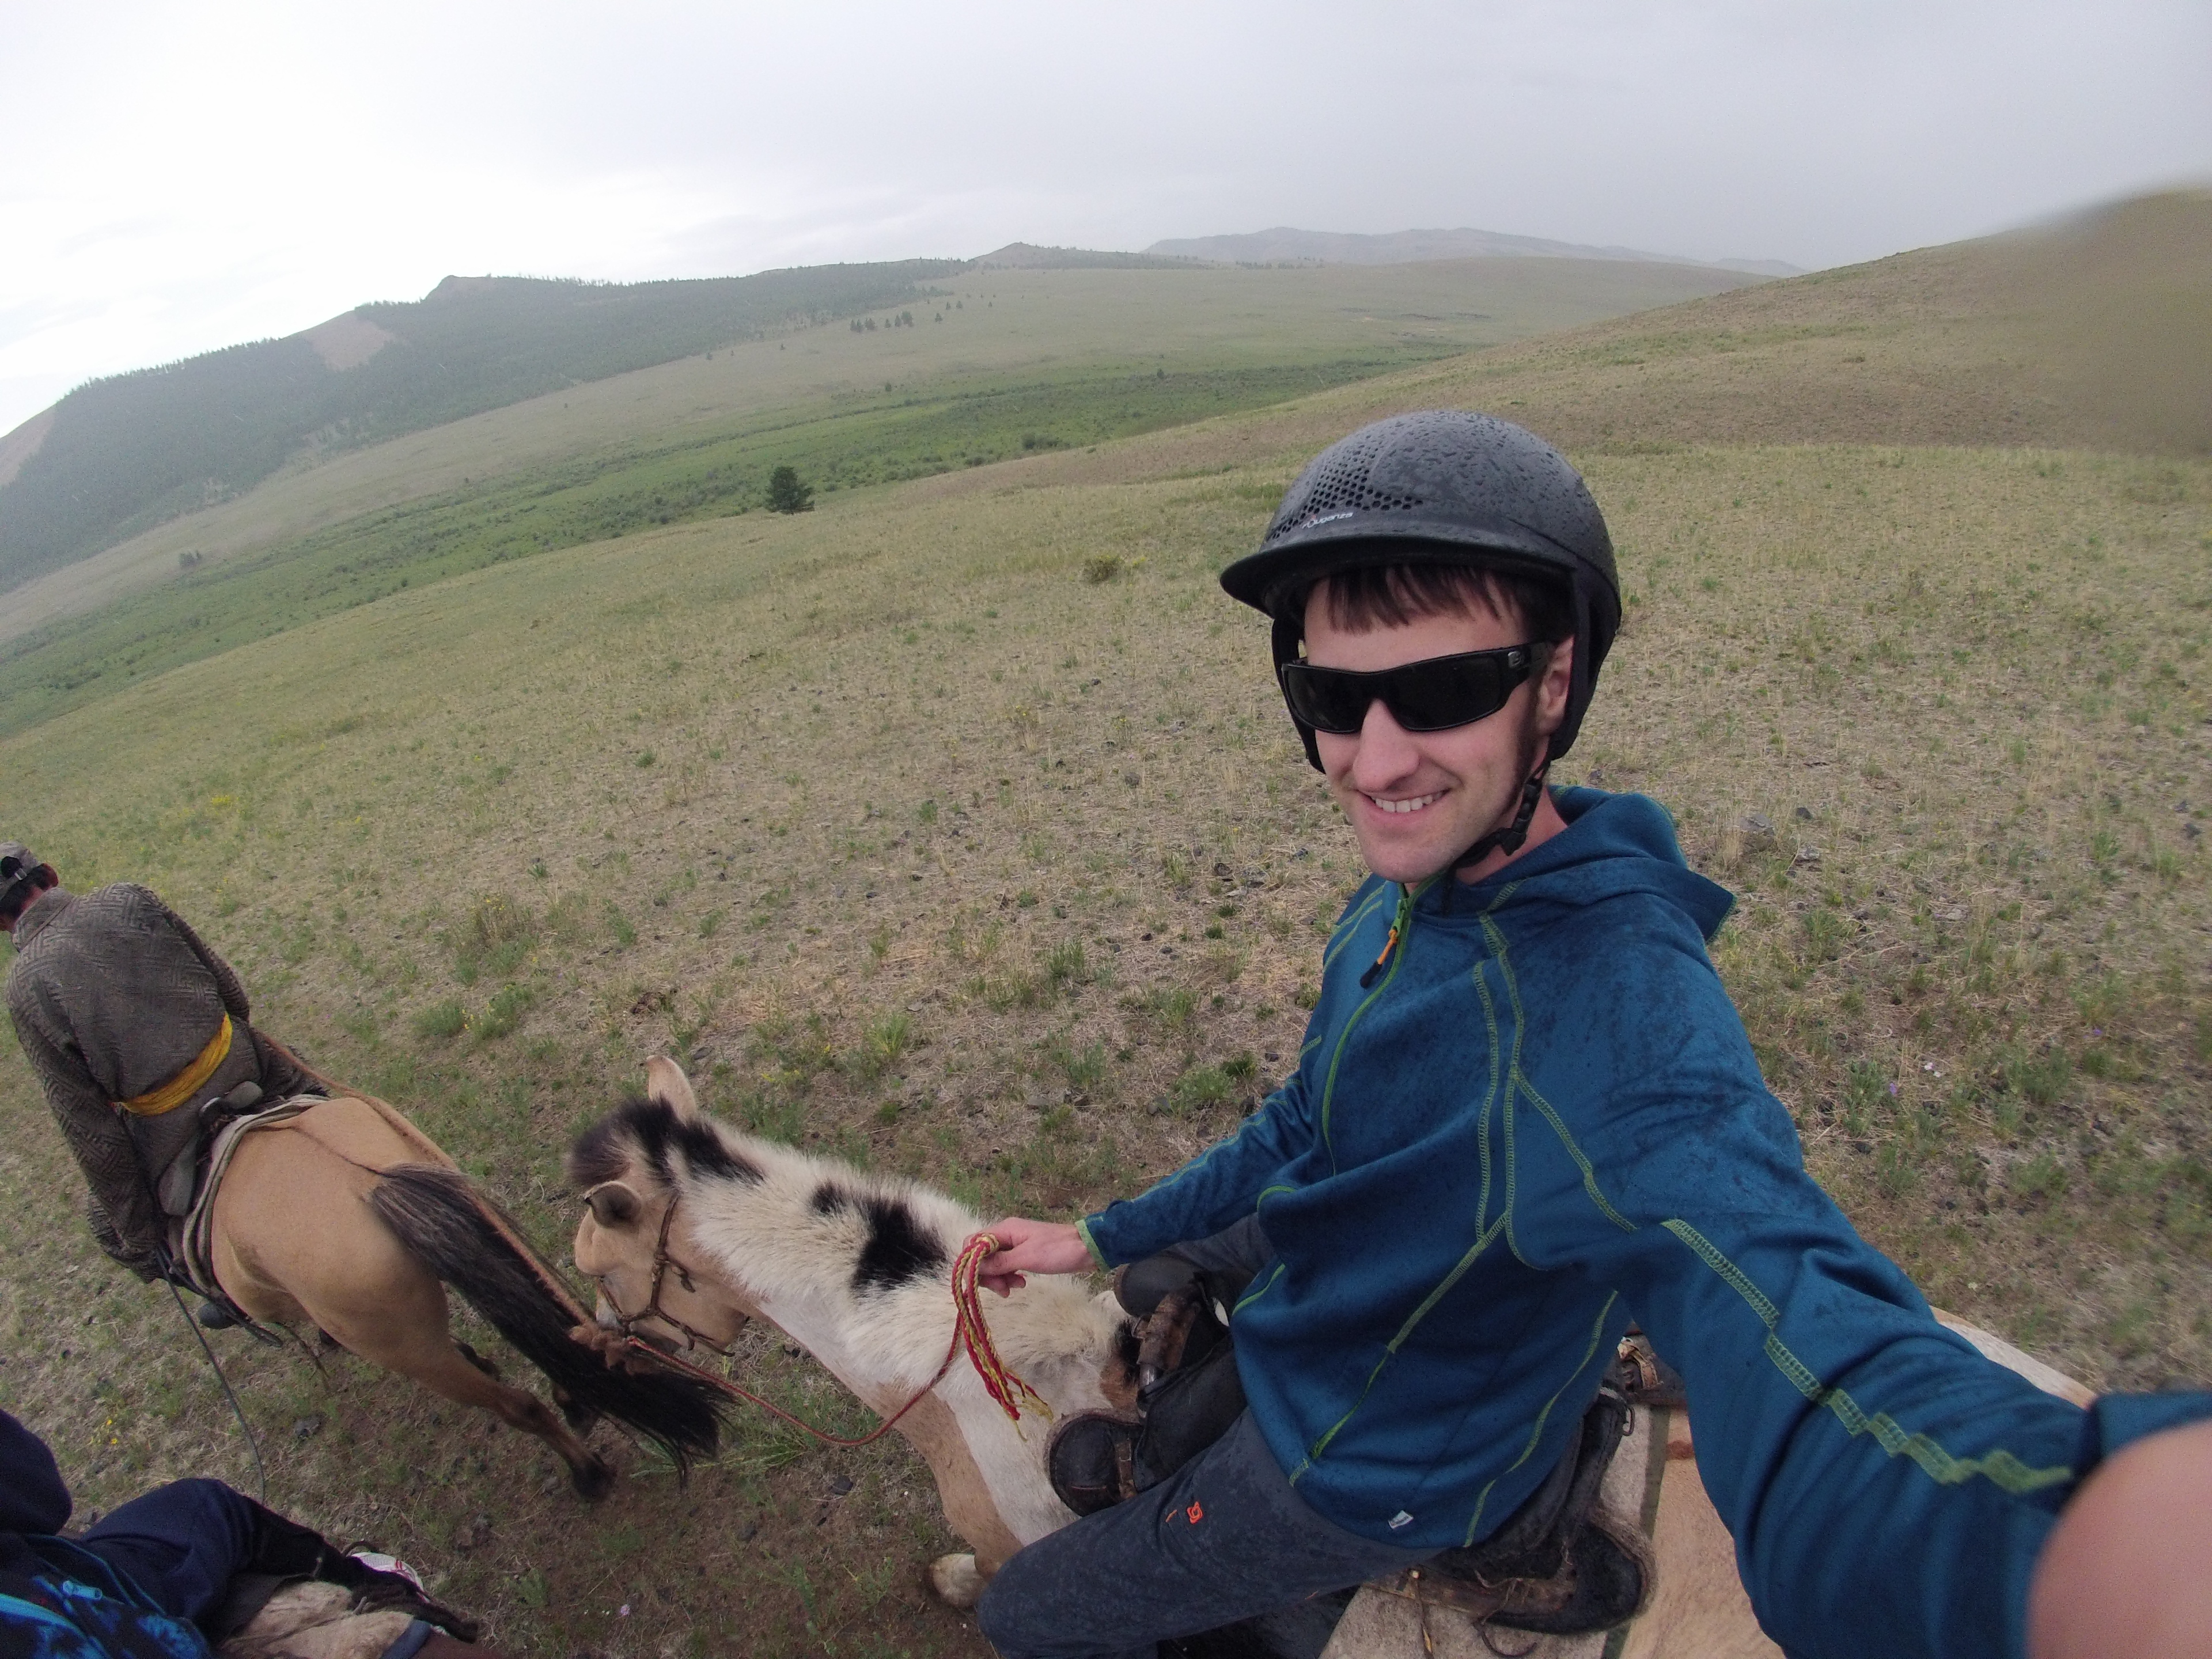 Glamping Ger style in Mongolia    Traveling Honeybird